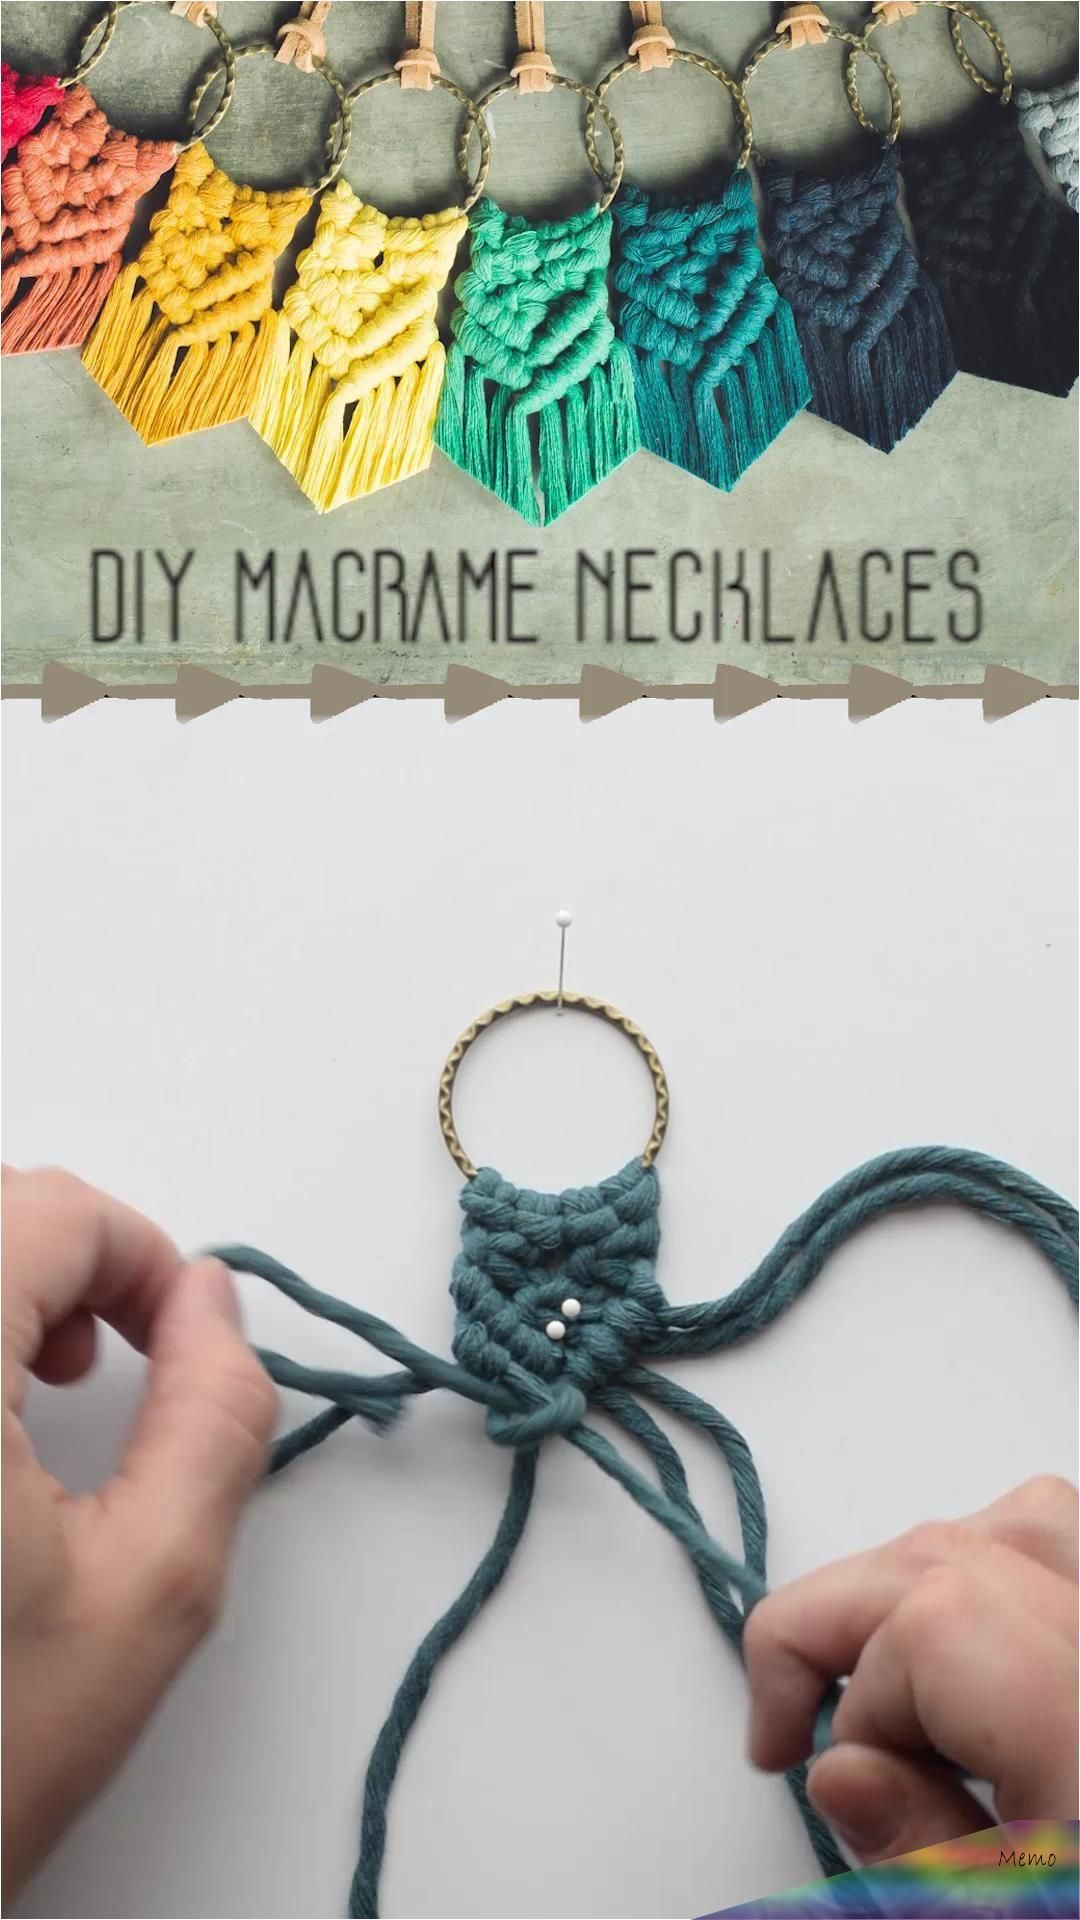 diy necklaces // supplies + instructions!